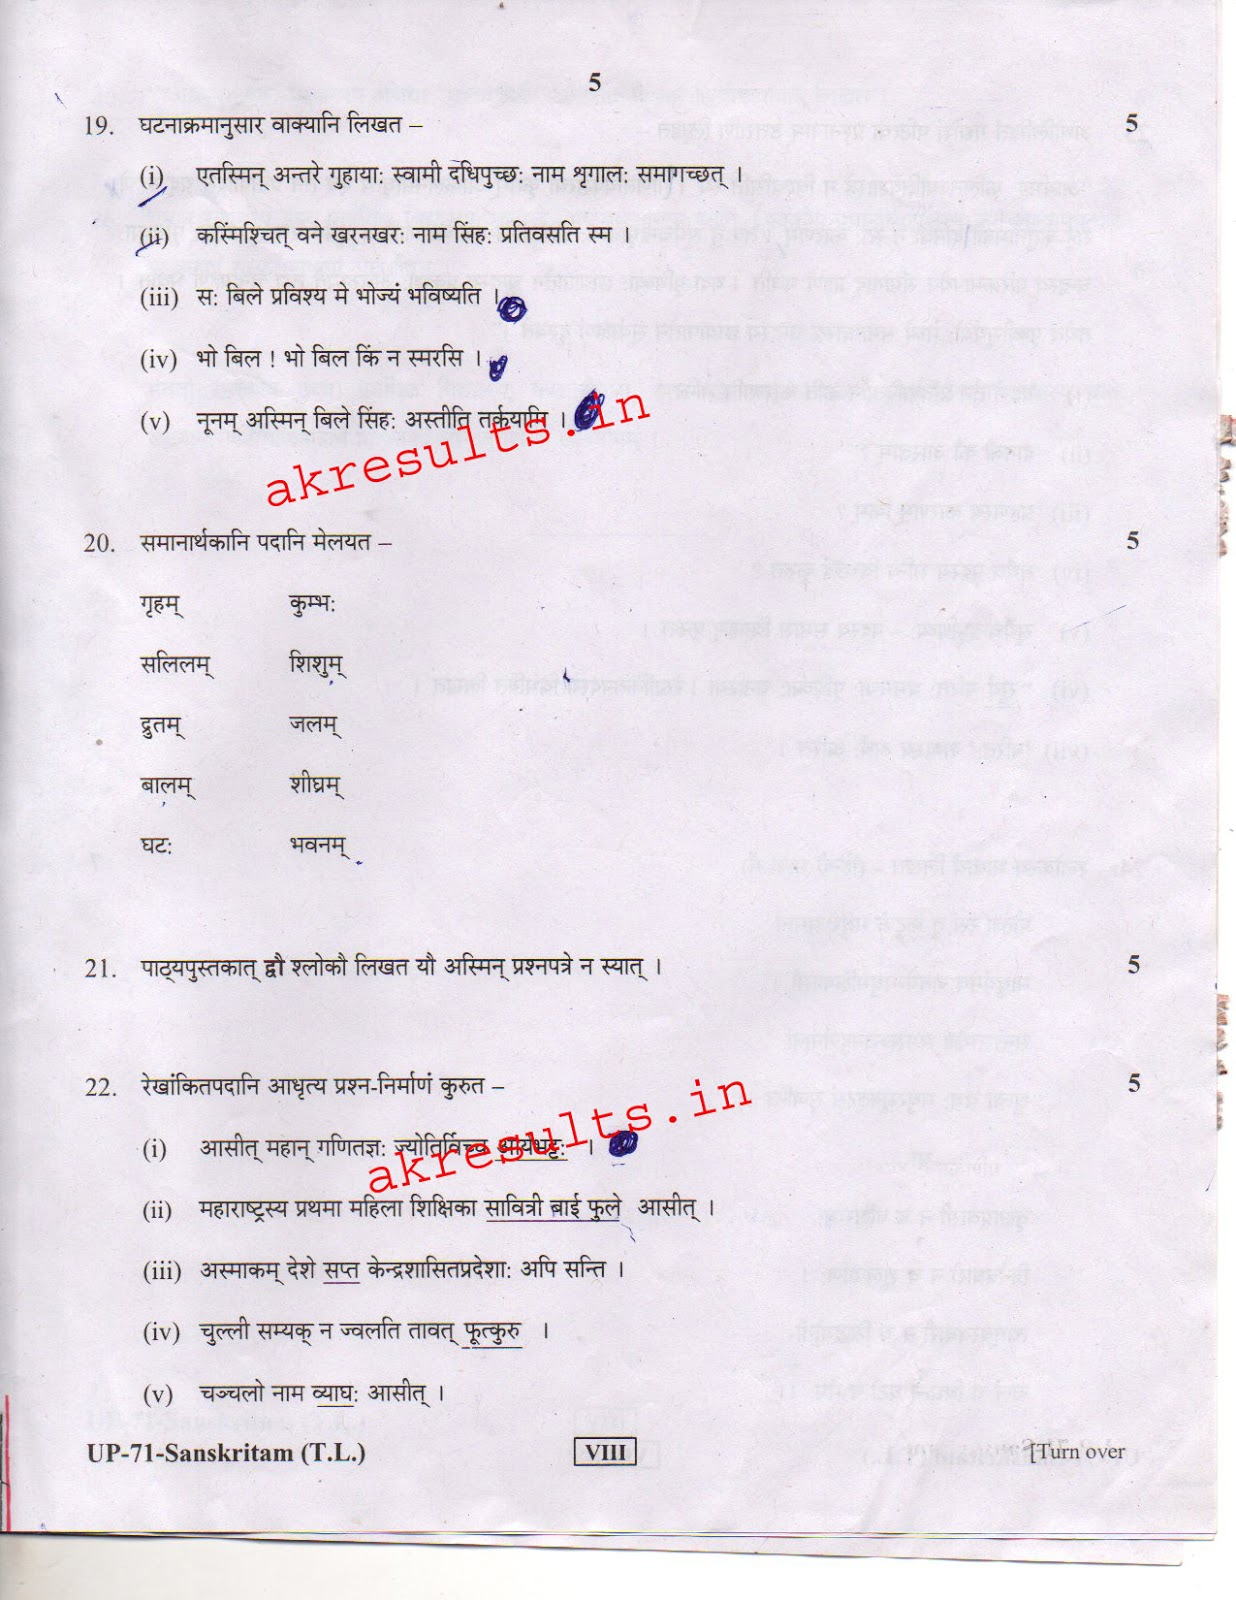 Rajasthan Board Class 8th Sanskrit Previous Old Pape Exam